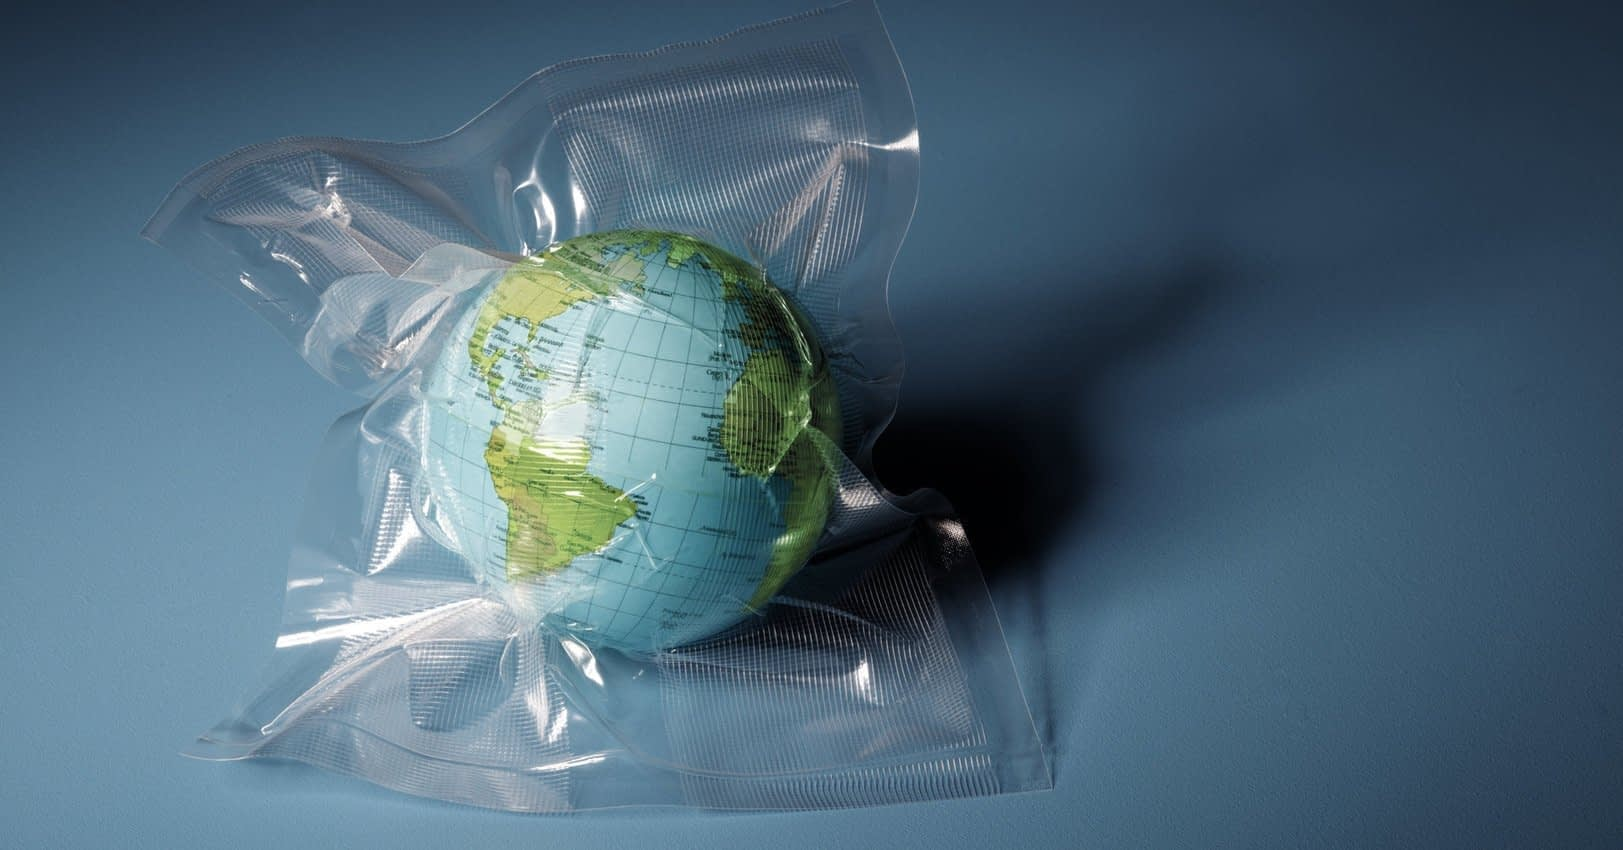 , We Live In A World Full Of Plastic, And People Are Sick Of It., The Circular Economy